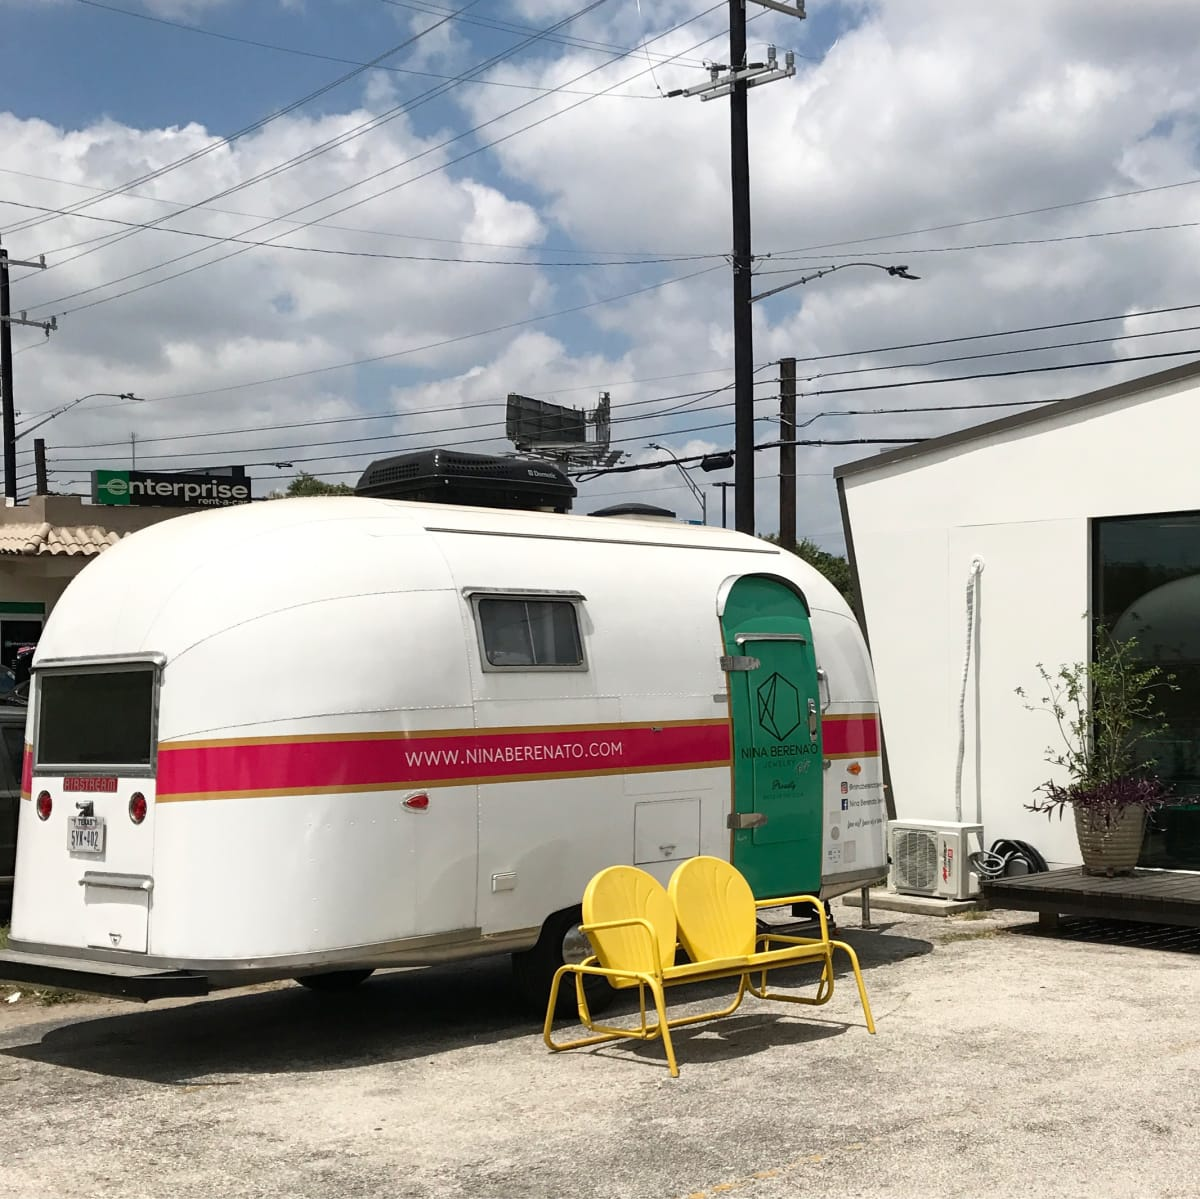 Nina Berenato Jewelry airstream San Antonio